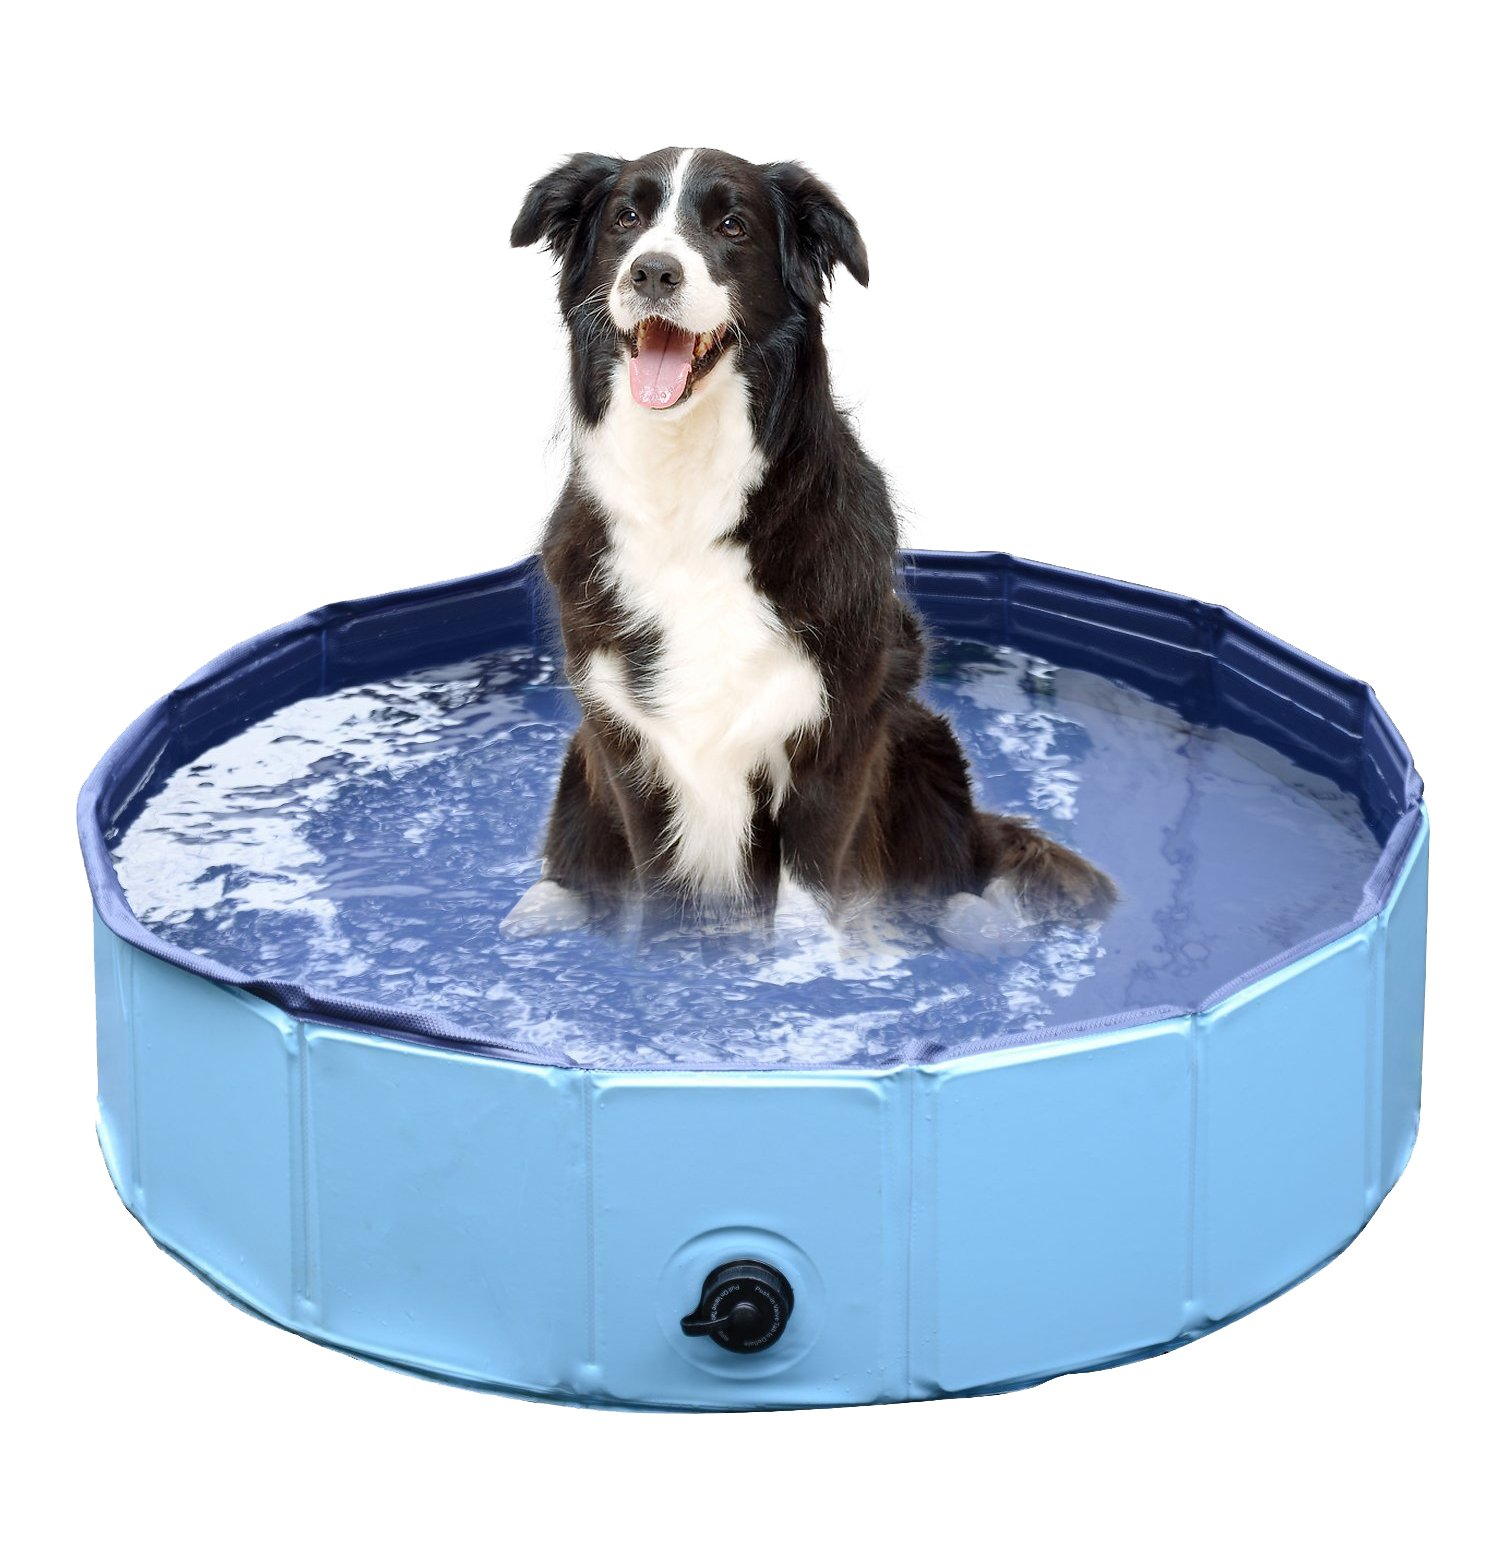 Jasonwell Foldable Dog Pet Bath Pool Collapsible Dog Pet Pool Bathing Tub Kiddie Pool for Dogs Cats and Kids (39.5inch.D x 11.8inch.H, Blue)